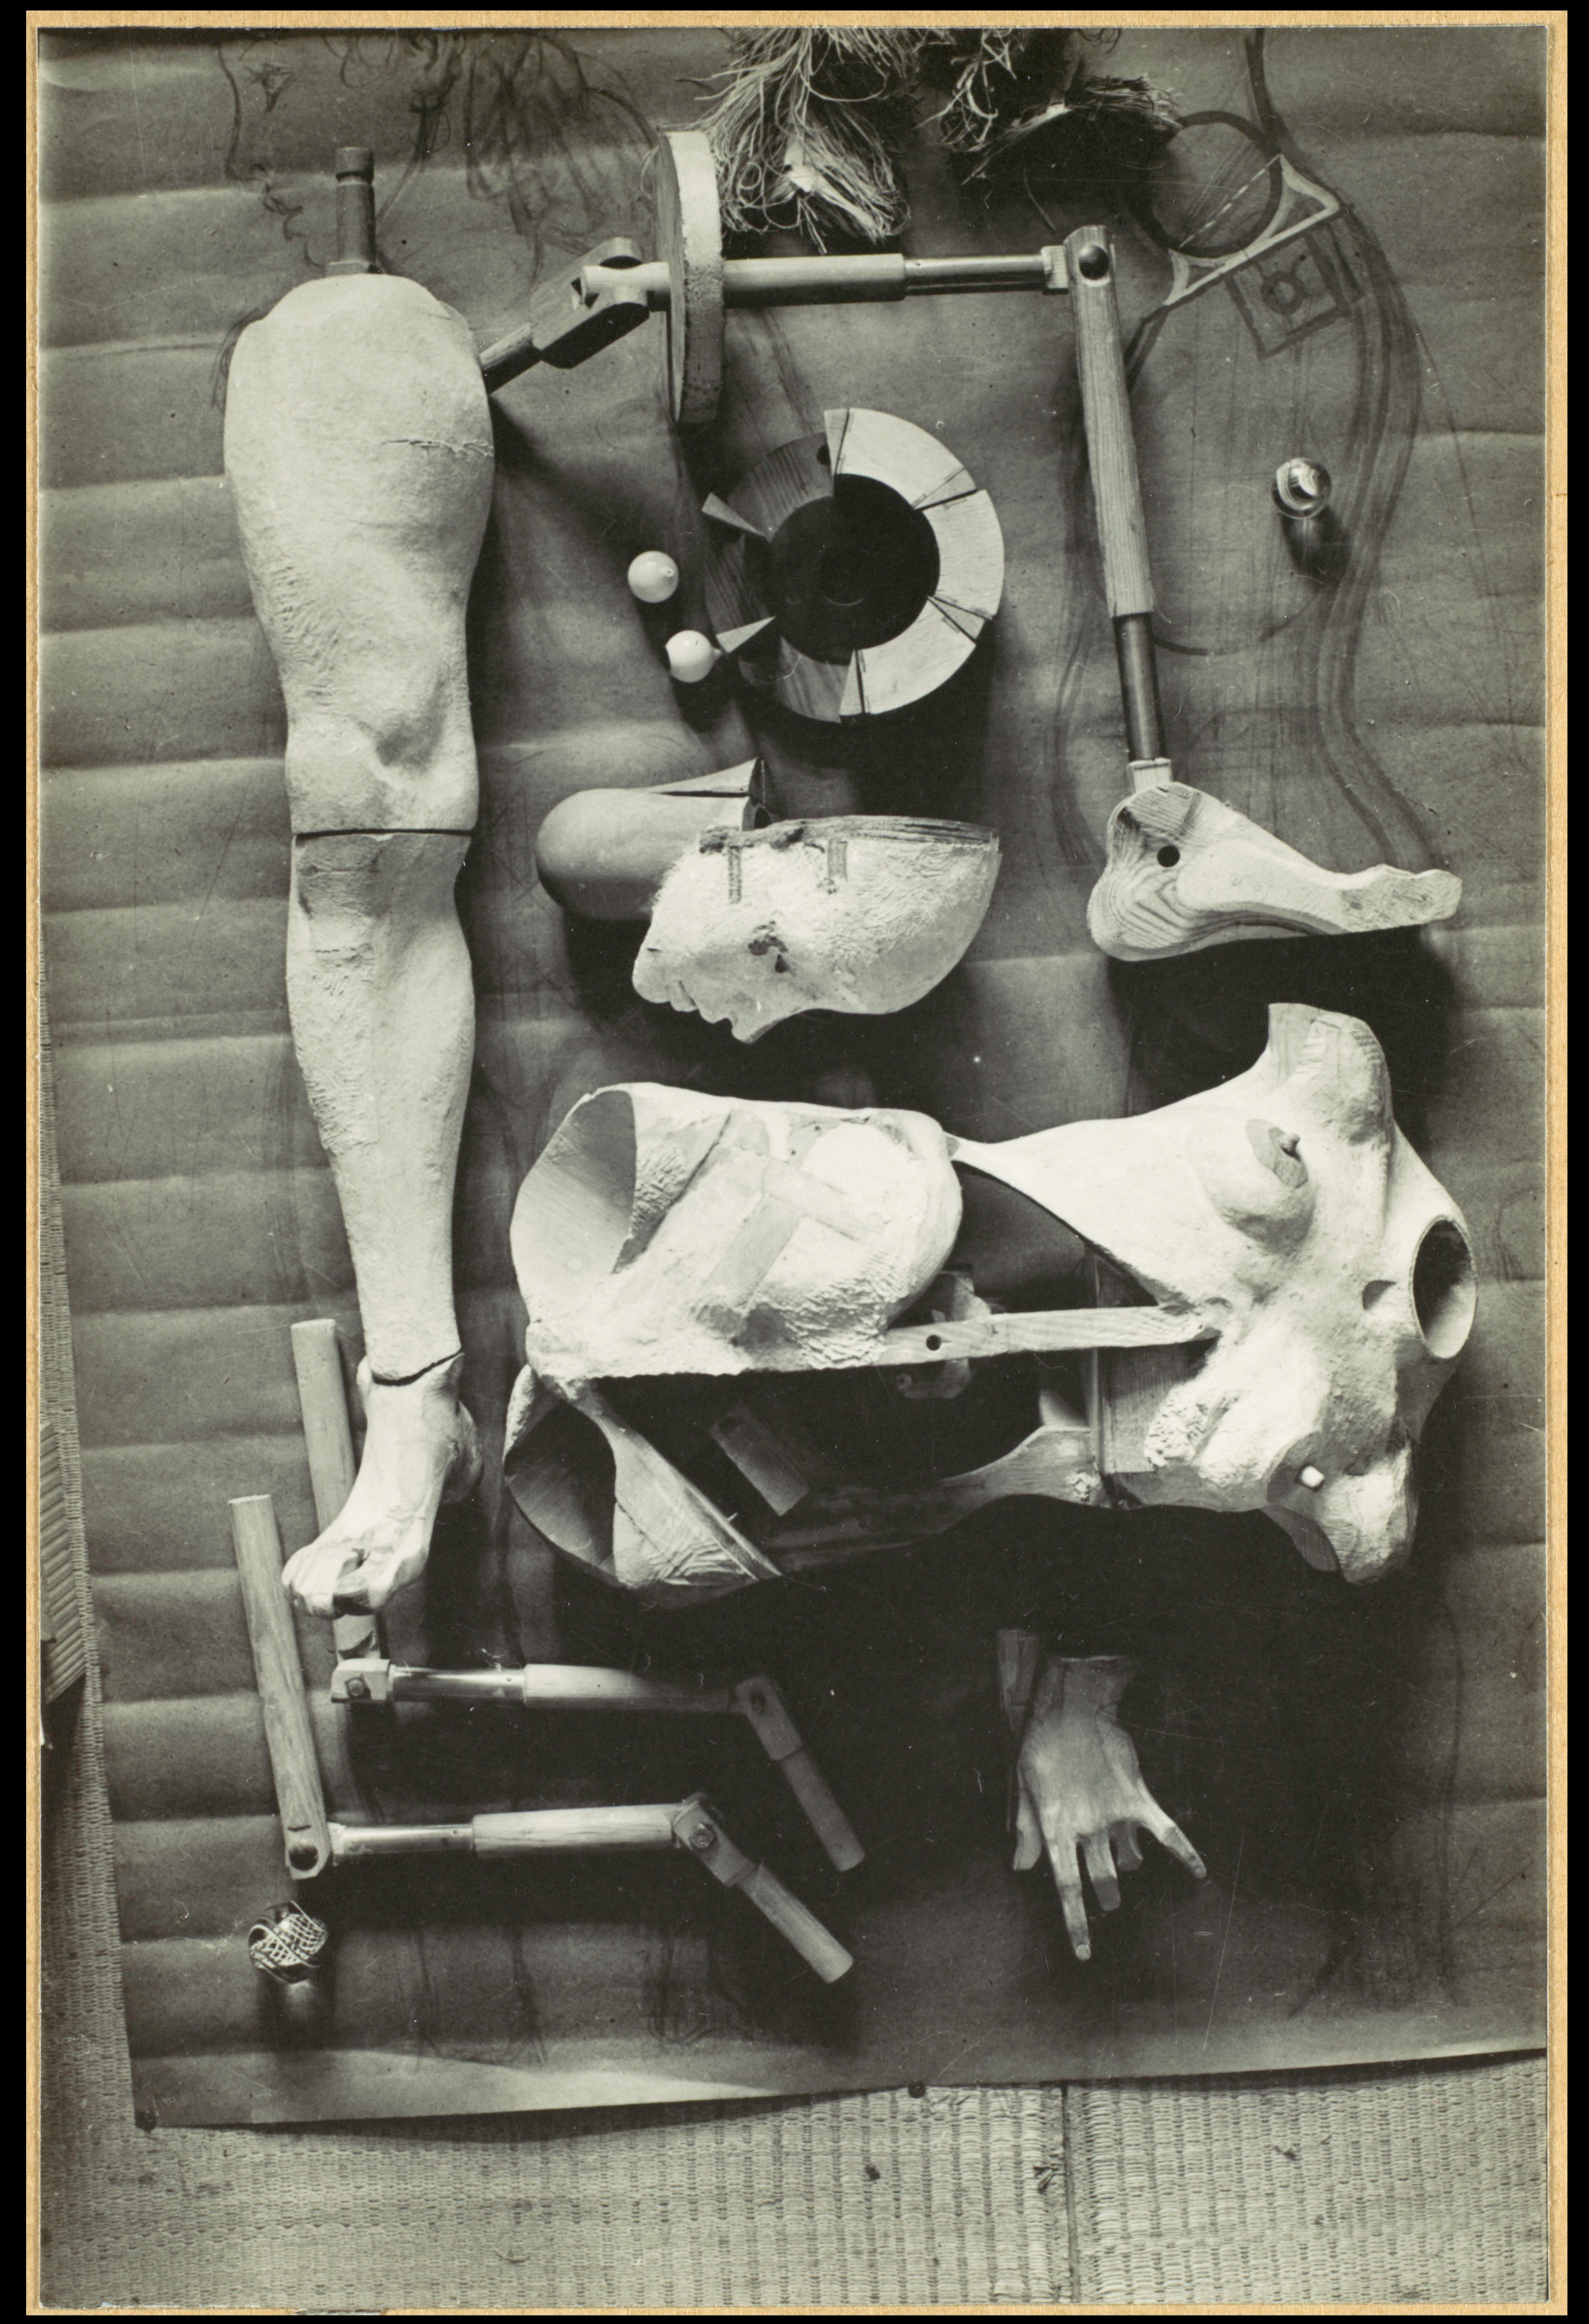 Uncanny Resemblances: The Lingering Influence of Hans Bellmer's Dolls - By Jess Bither